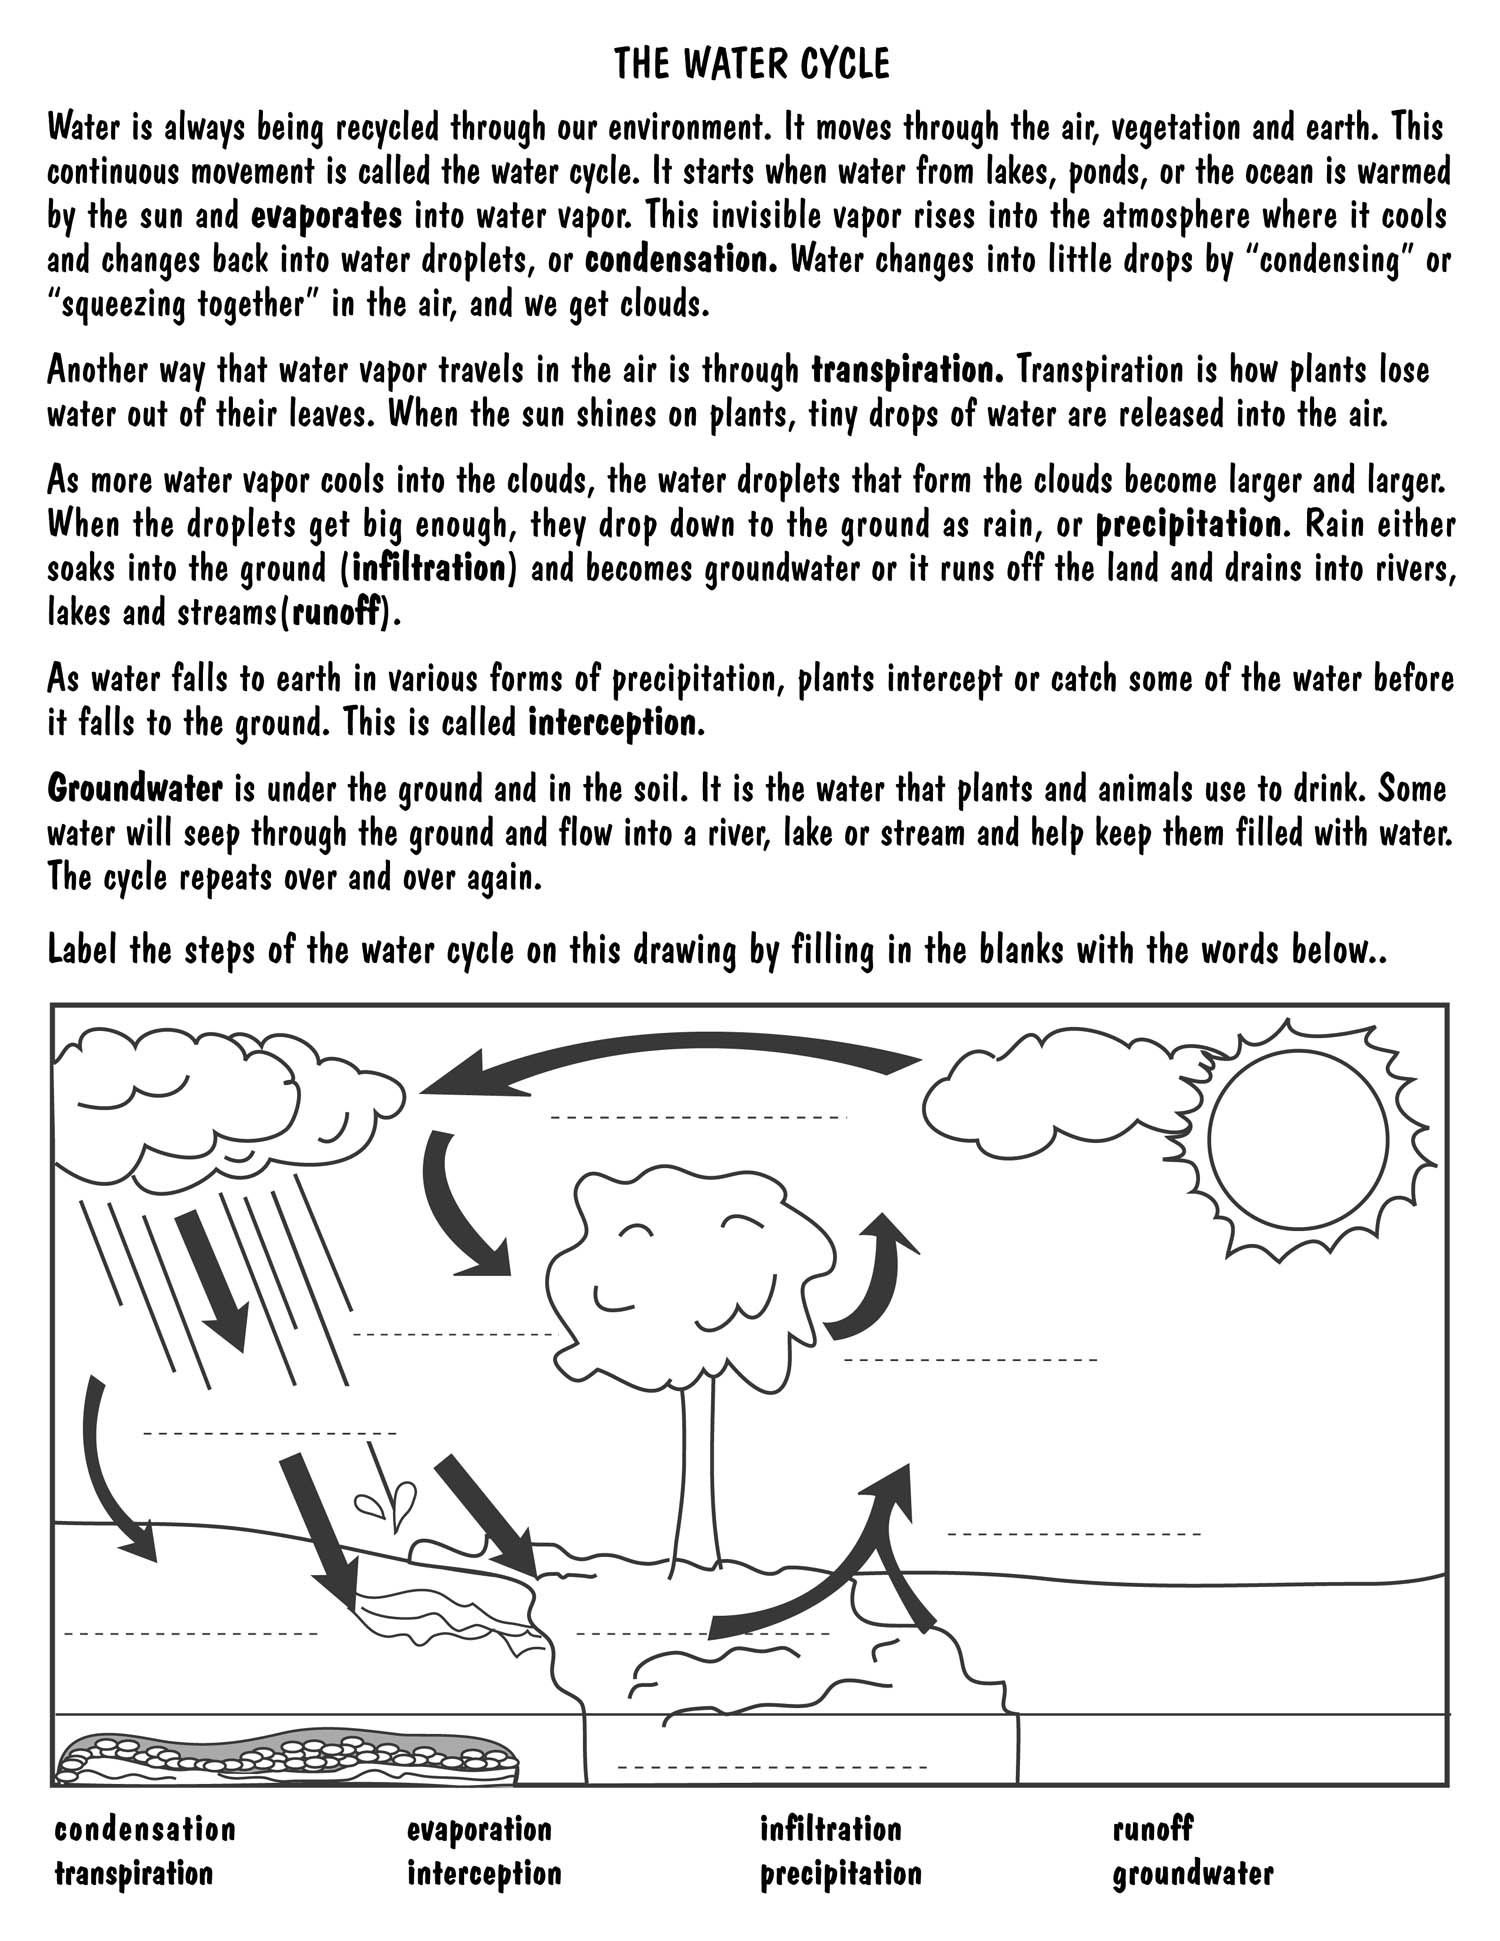 Water Cycle Diagram For Kids To Label